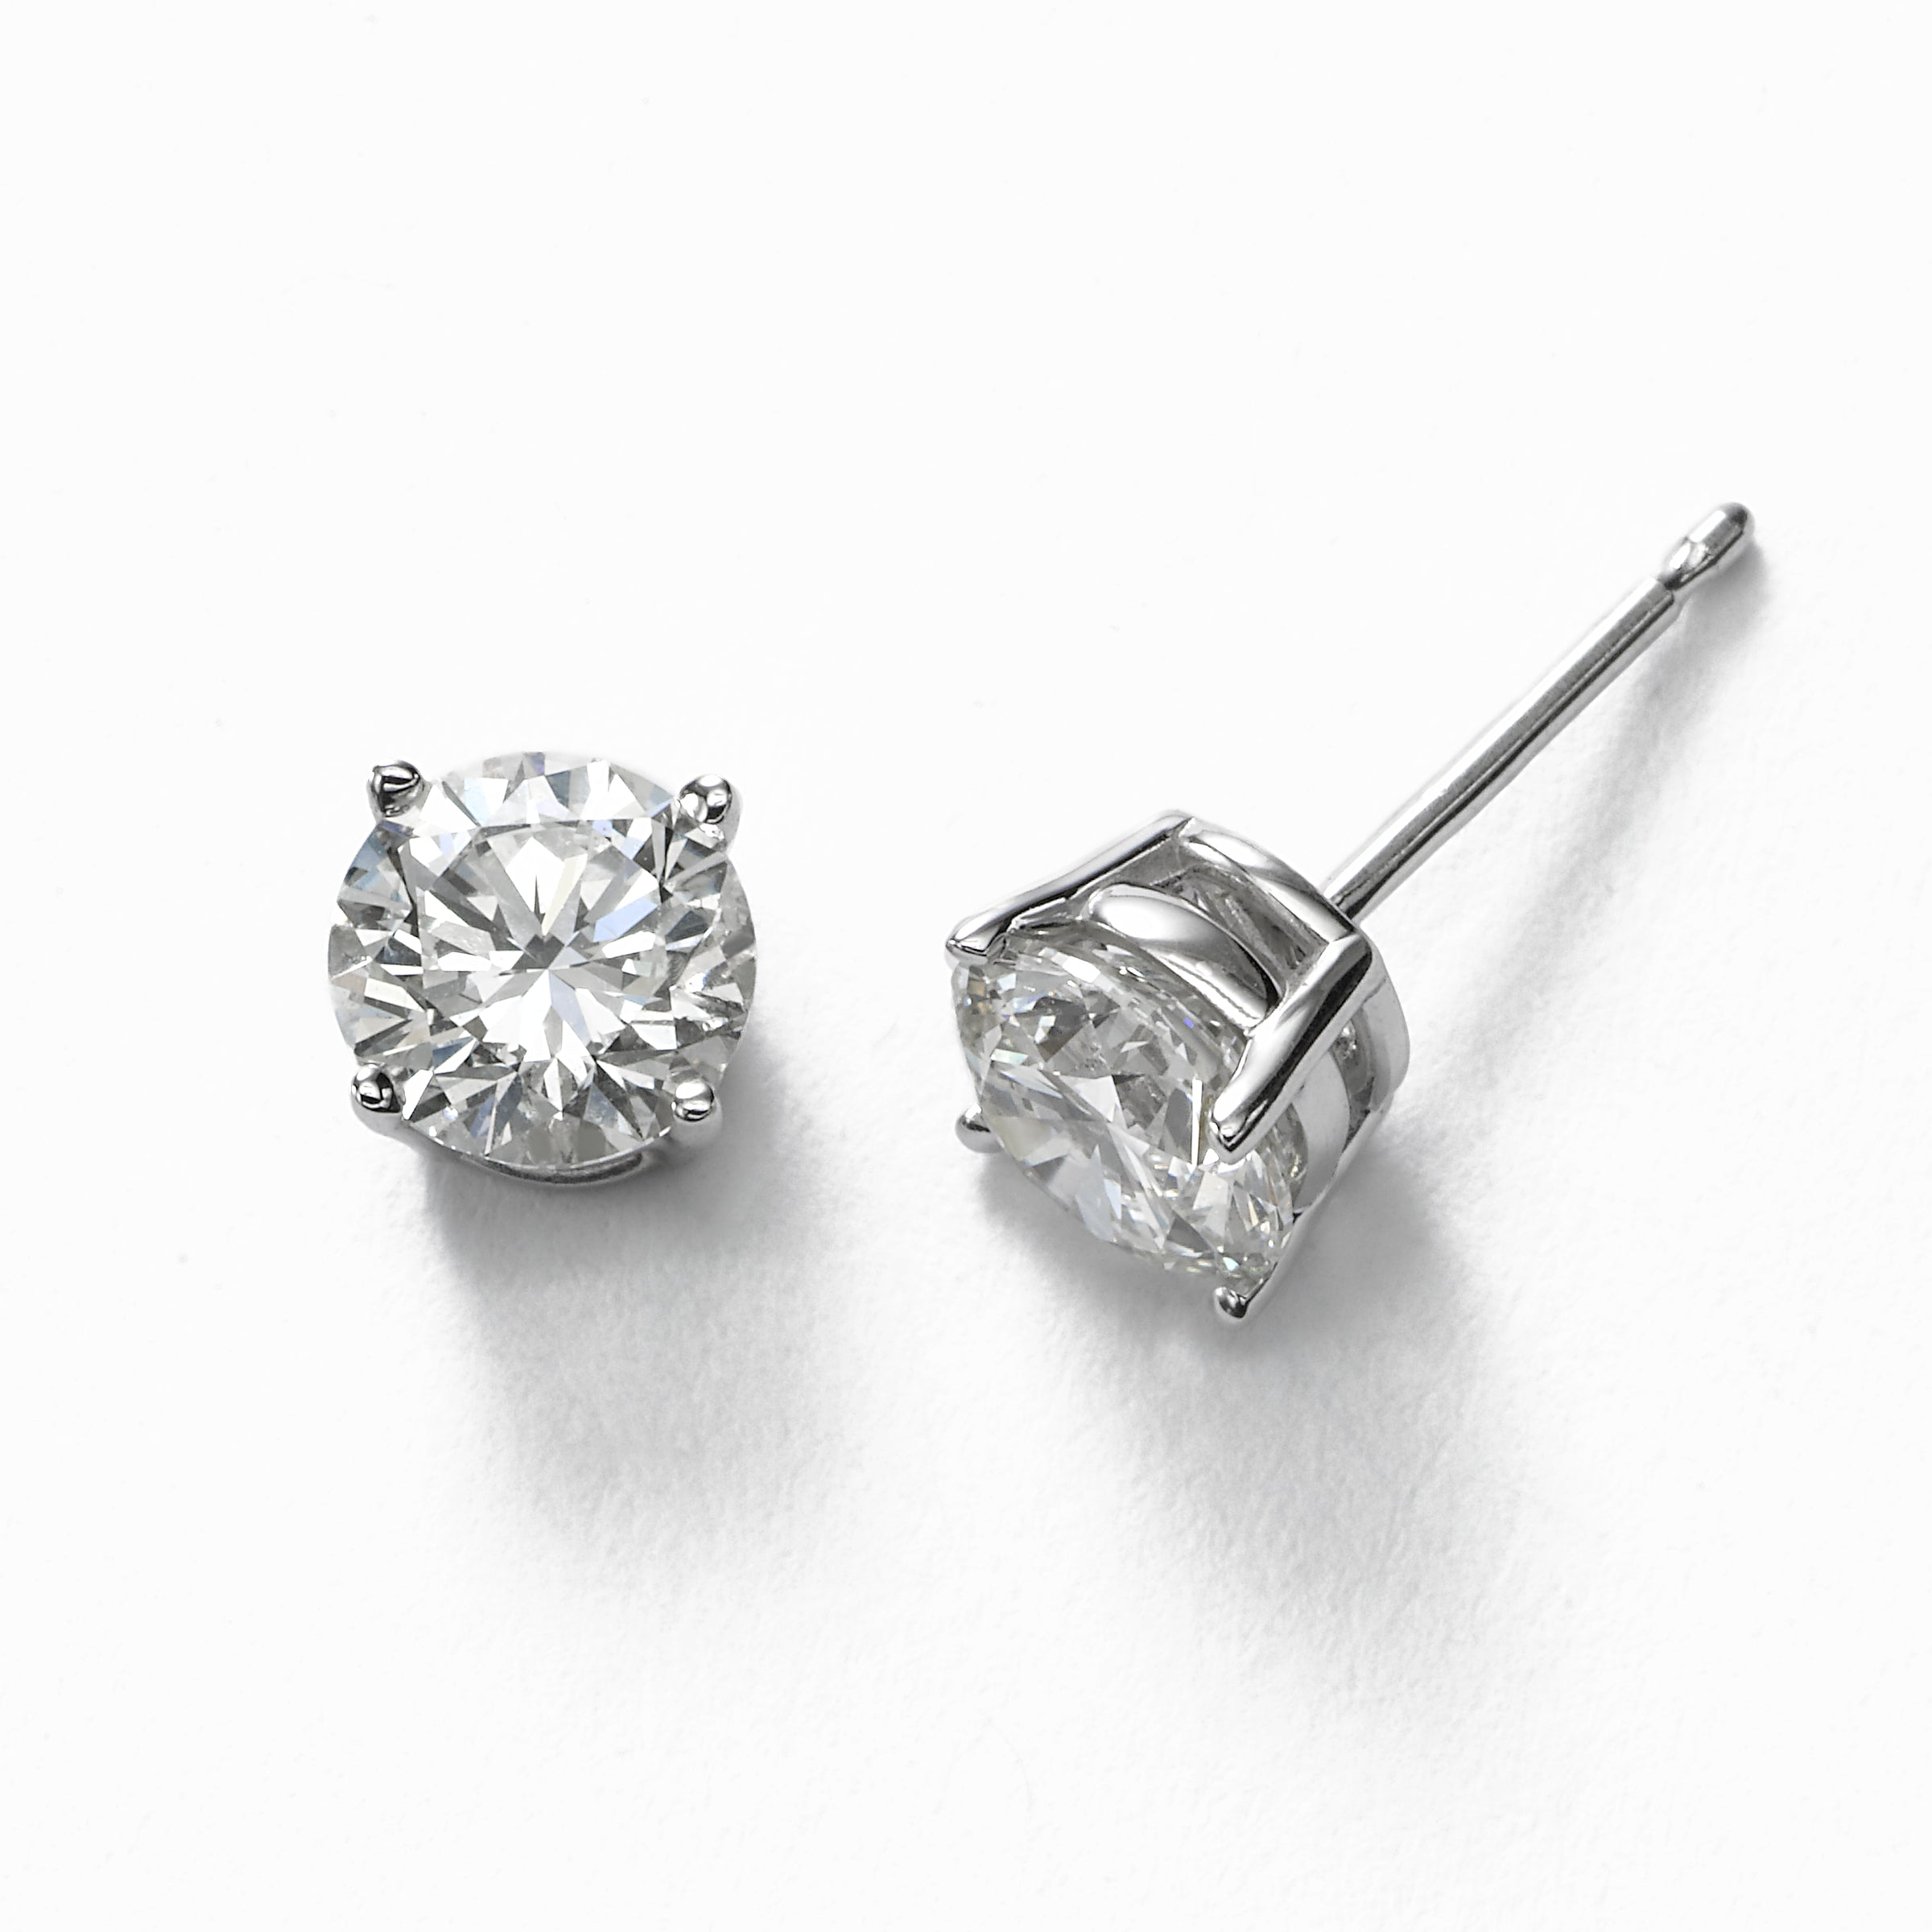 Diamond Stud Earrings, 1.40 Carat total, I1/I2, 14K White Gold